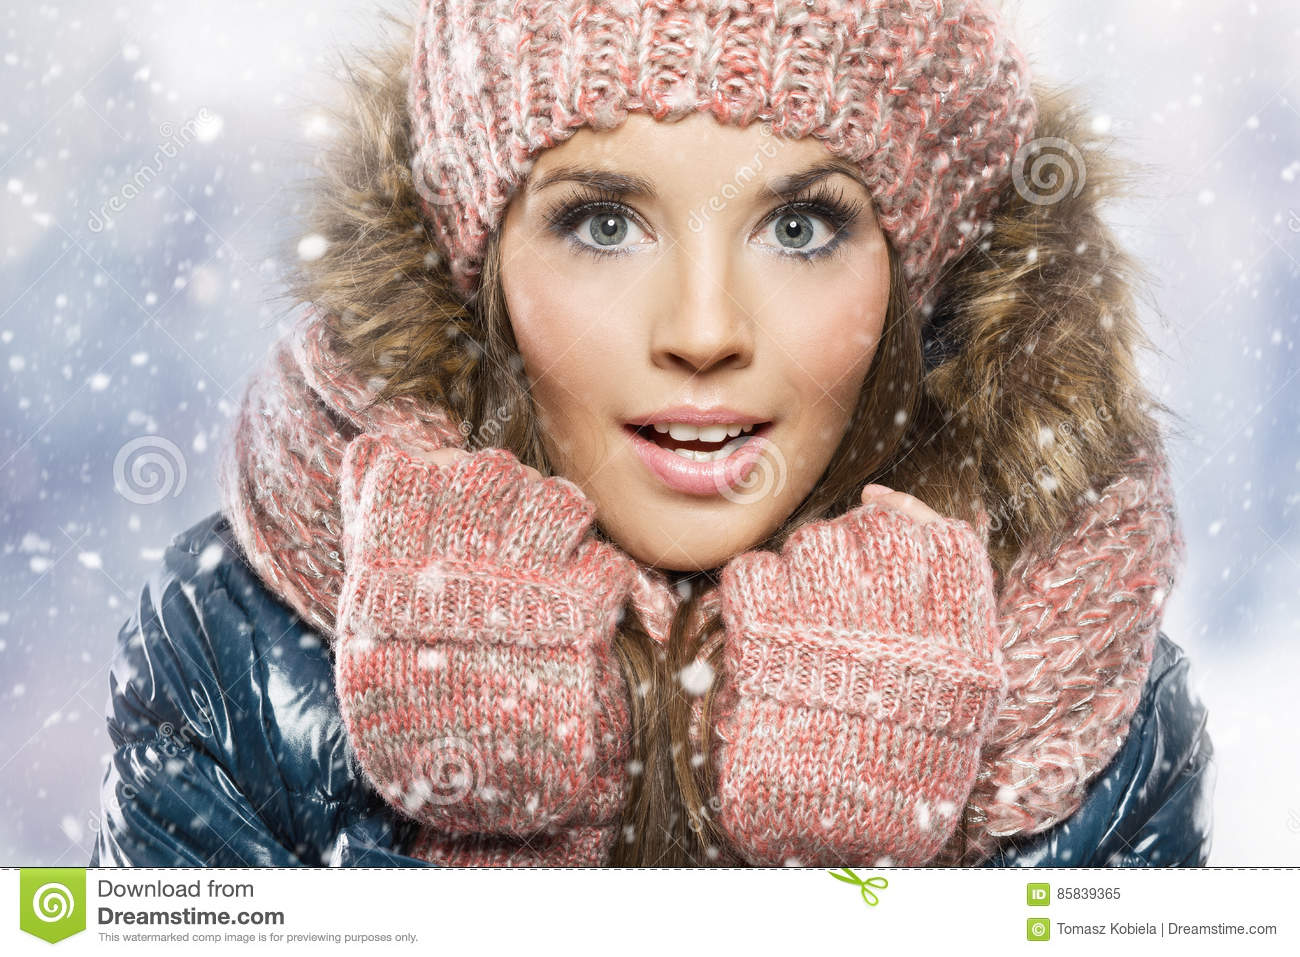 Winter portrait of young beautiful brunette woman wearing knitted snood covered in snow.